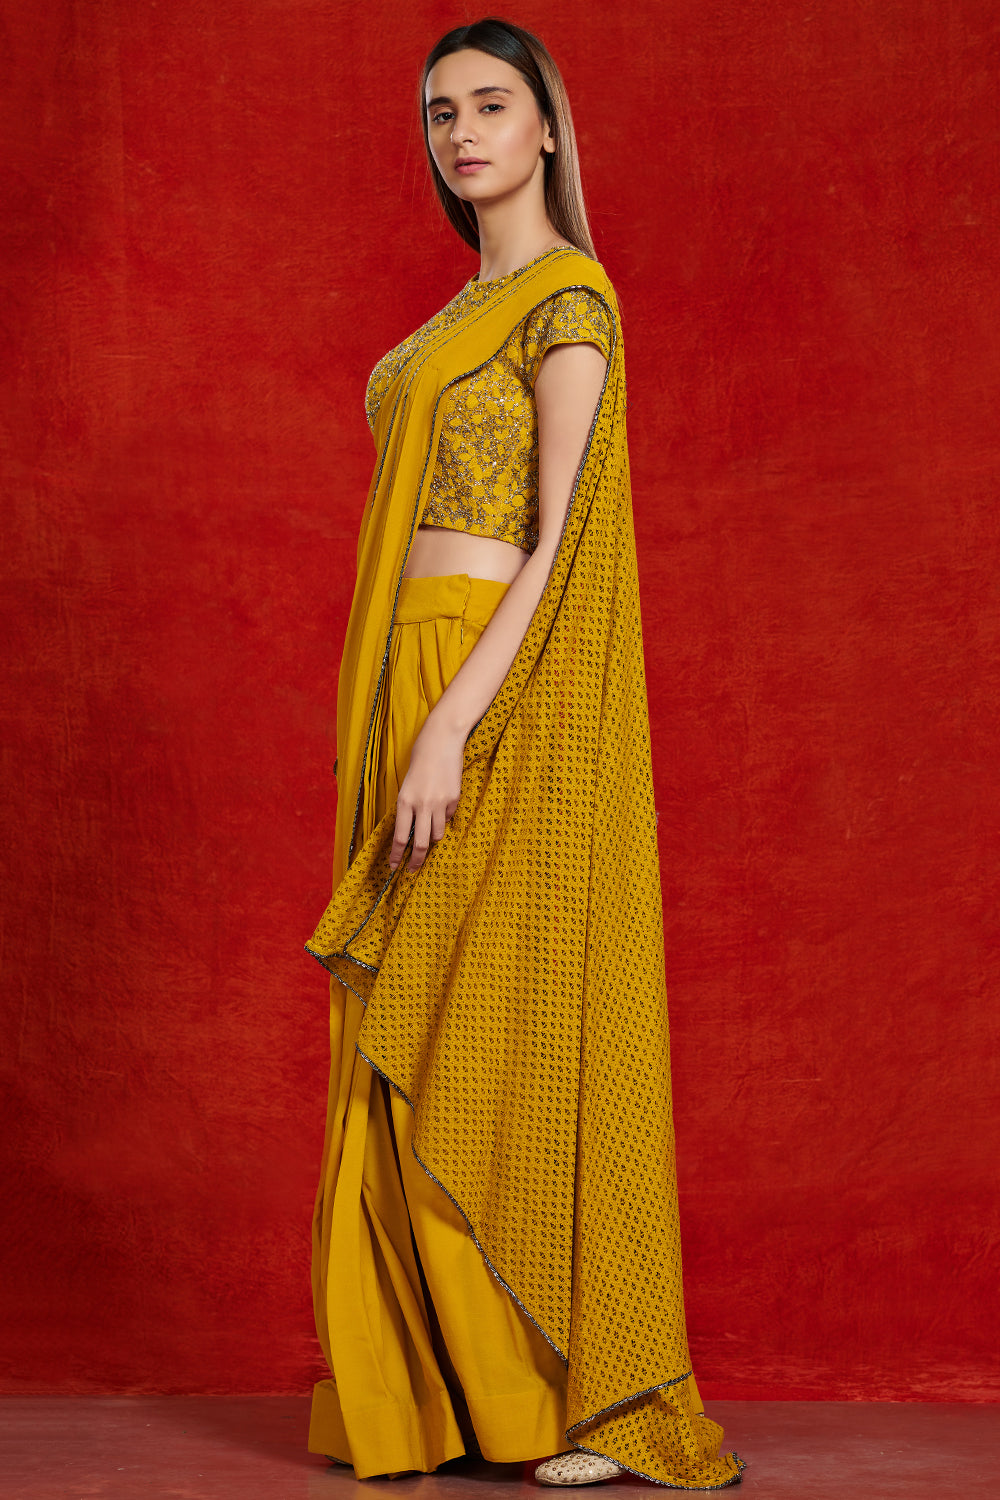 Buy beautiful mustard yellow embellished saree online in USA with keyhole blouse. Make a fashion statement on festive occasions and weddings with palazzo suits, sharara suits, partywear dresses, salwar suits from Pure Elegance Indian fashion store in USA.-side